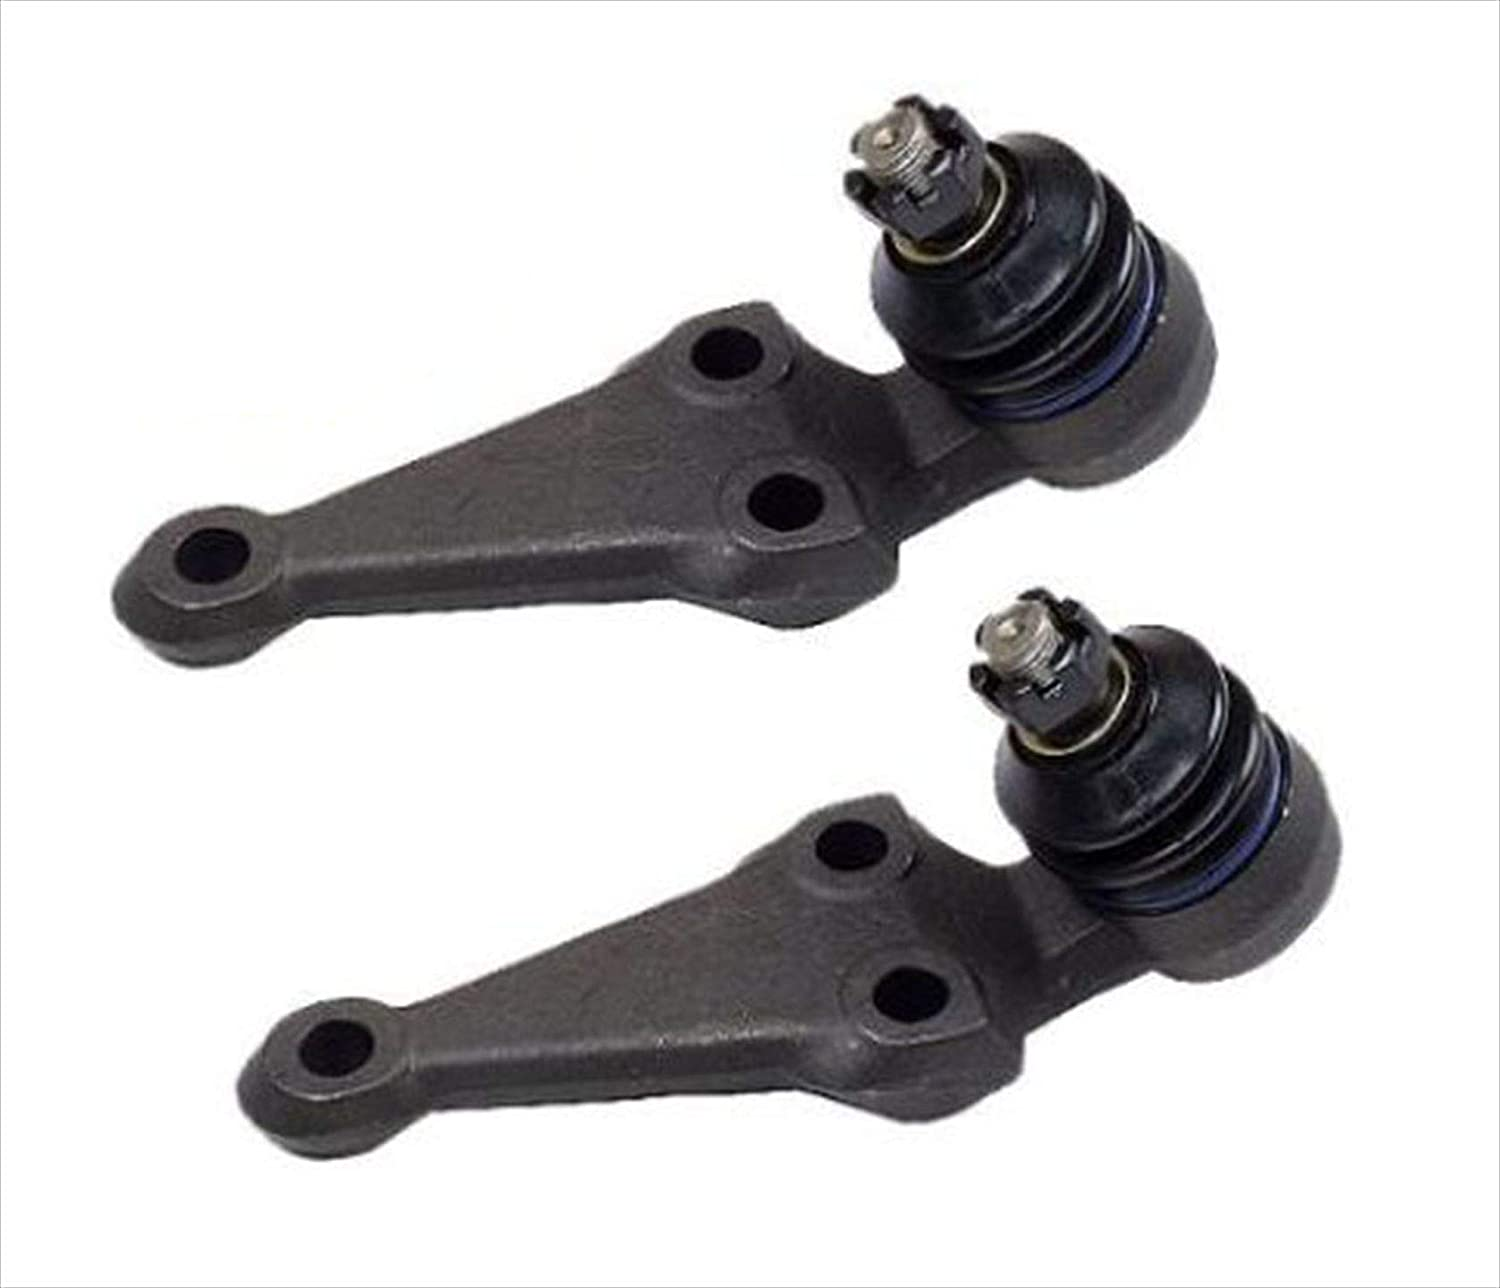 2 Lower Ball Joints Fits for Toyota Supra 1986-1993